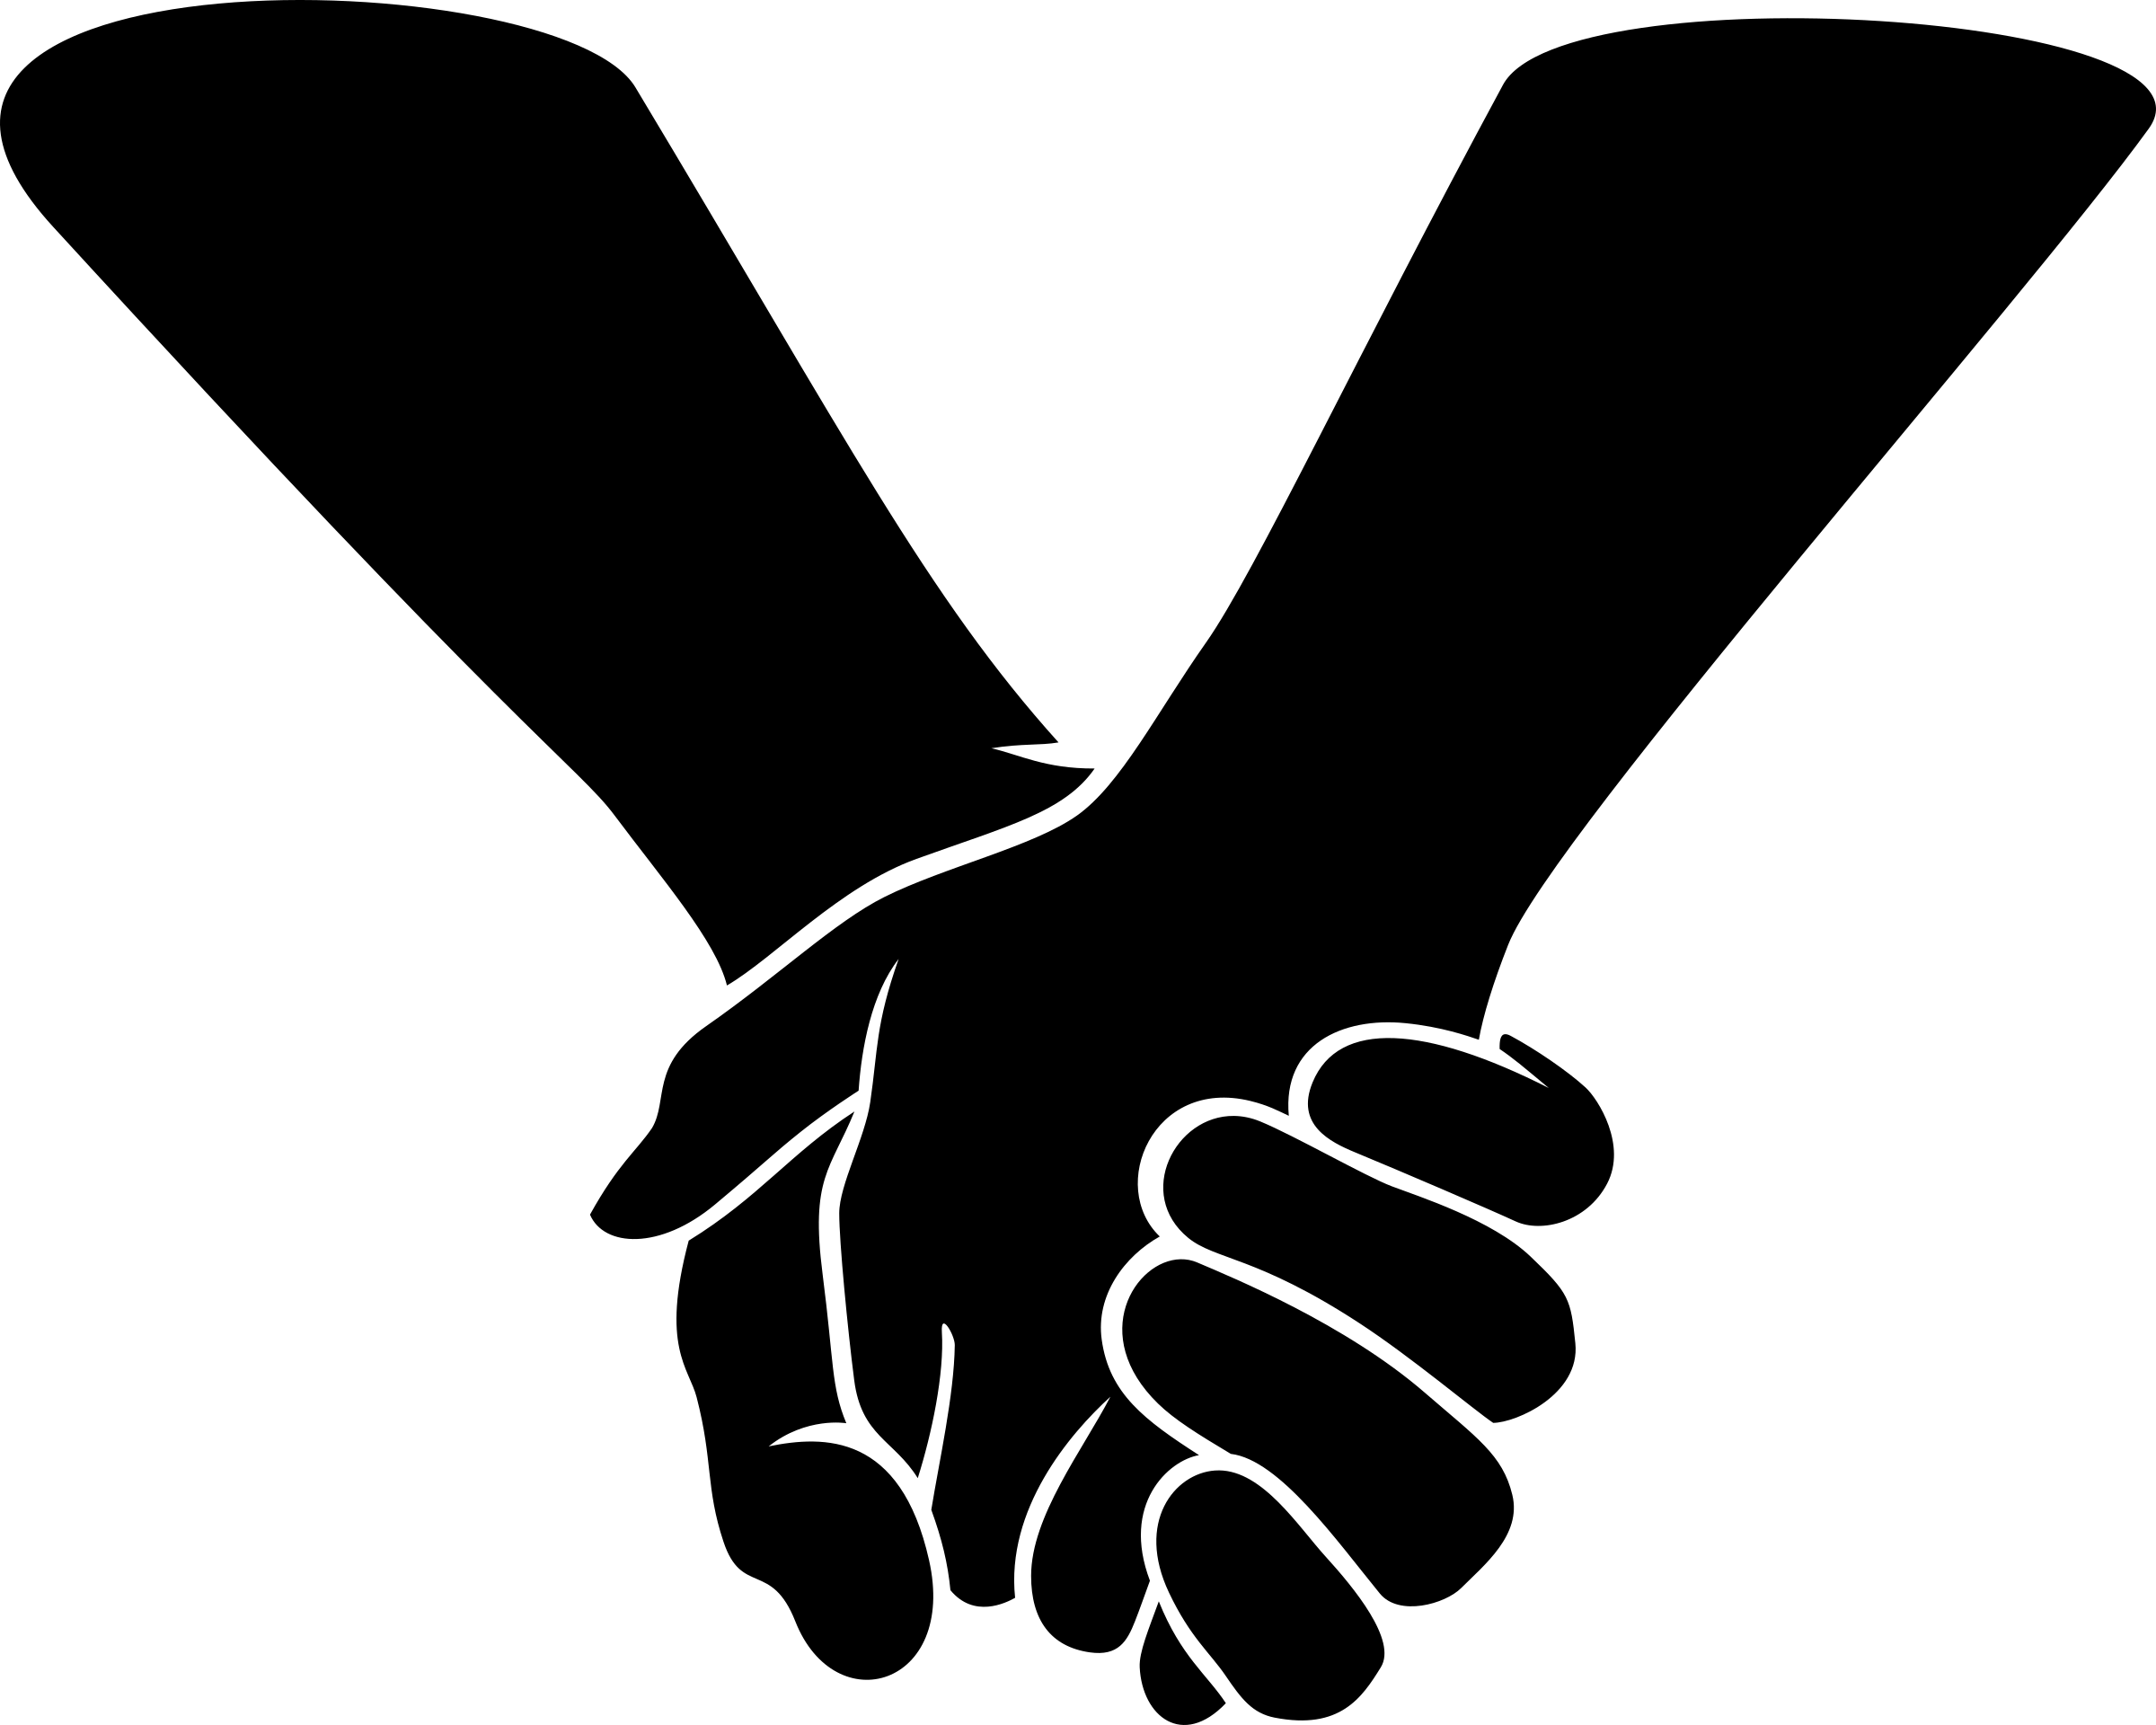 Hand holding clipart image free download Hands holding clipart » Clipart Portal image free download